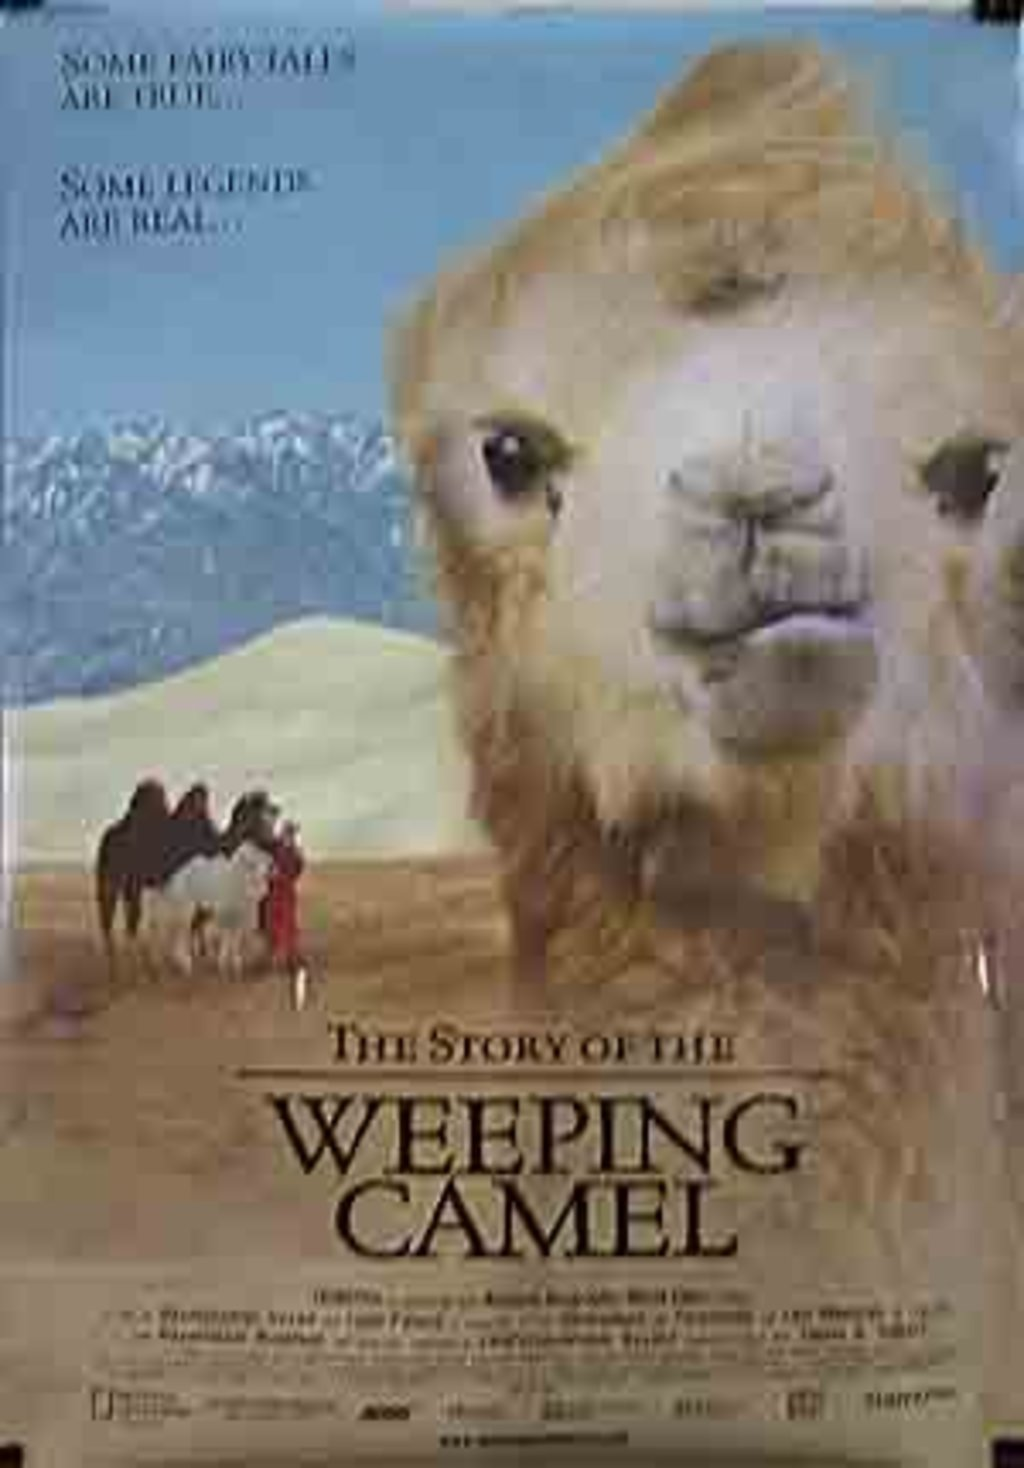 Watch The Story of the Weeping Camel on Netflix Today! | NetflixMovies.com